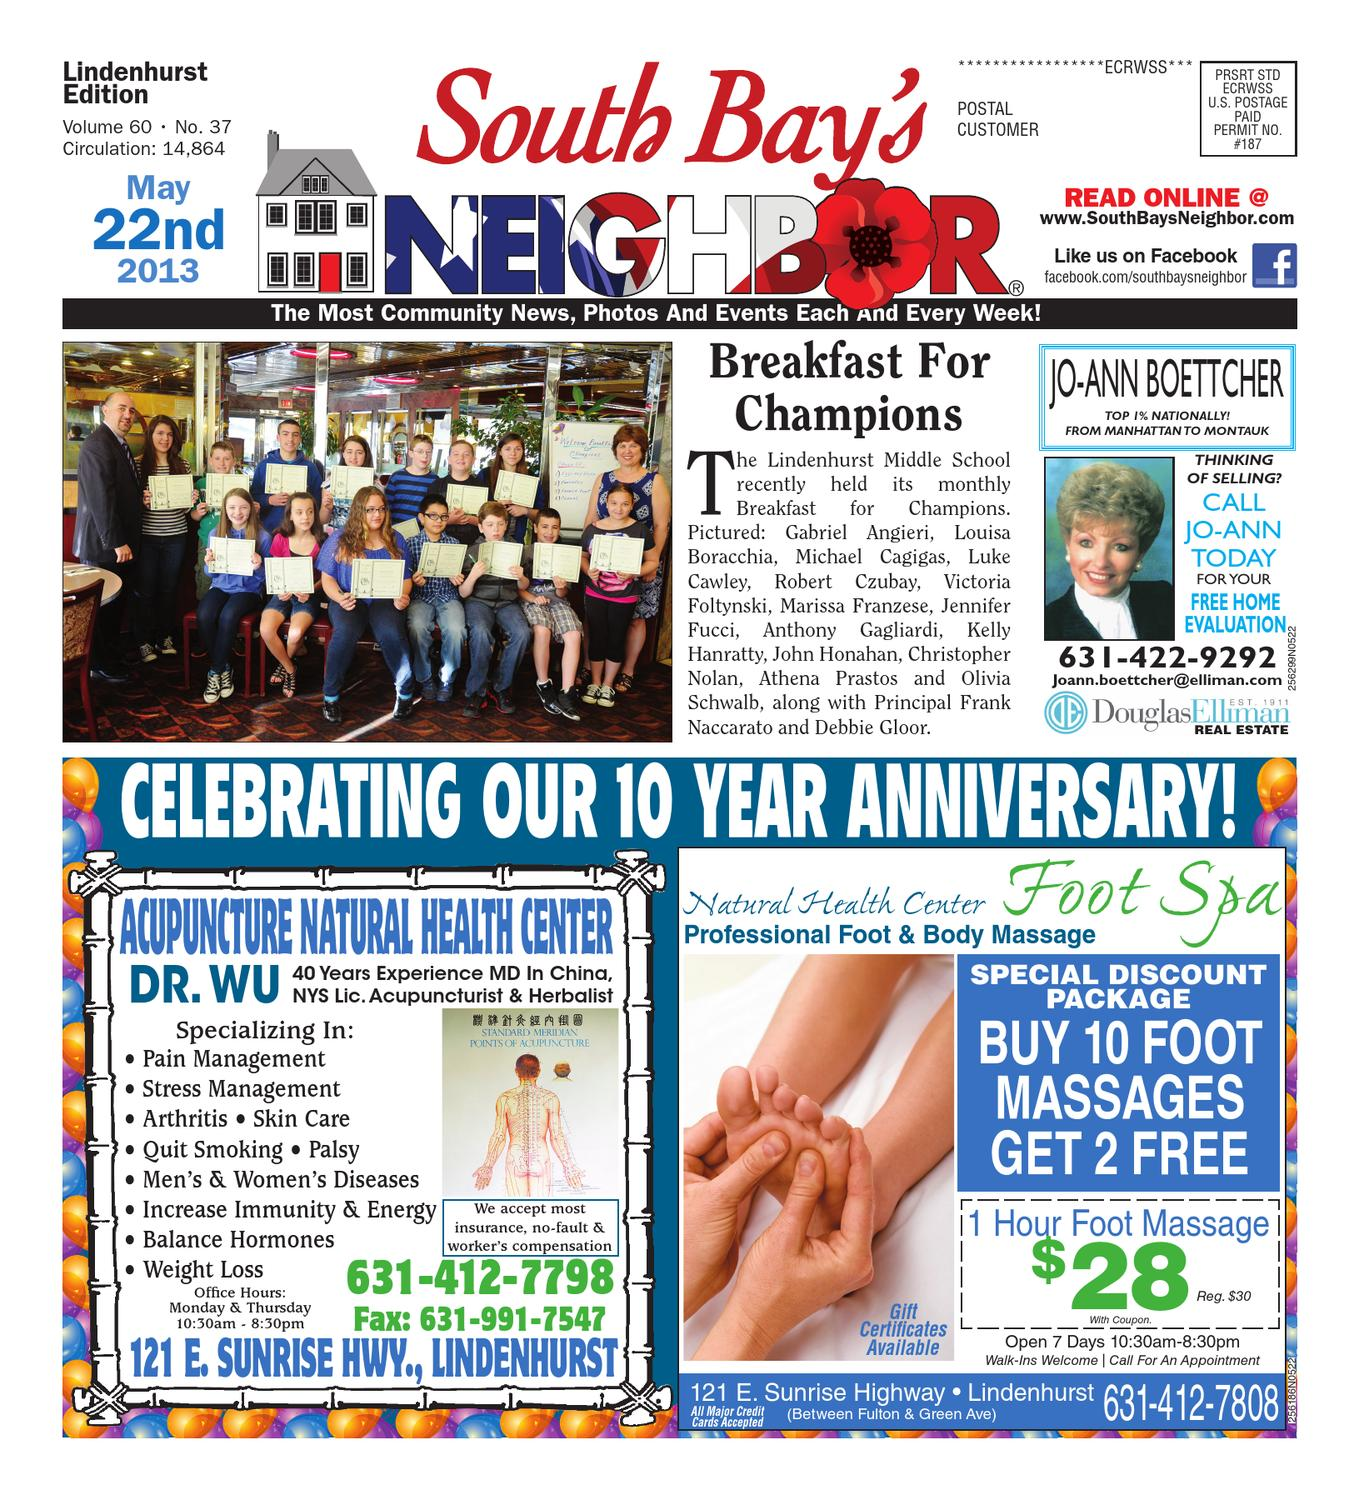 May 22 2013 Lindenhurst by South Bay s Neighbor Newspapers issuu